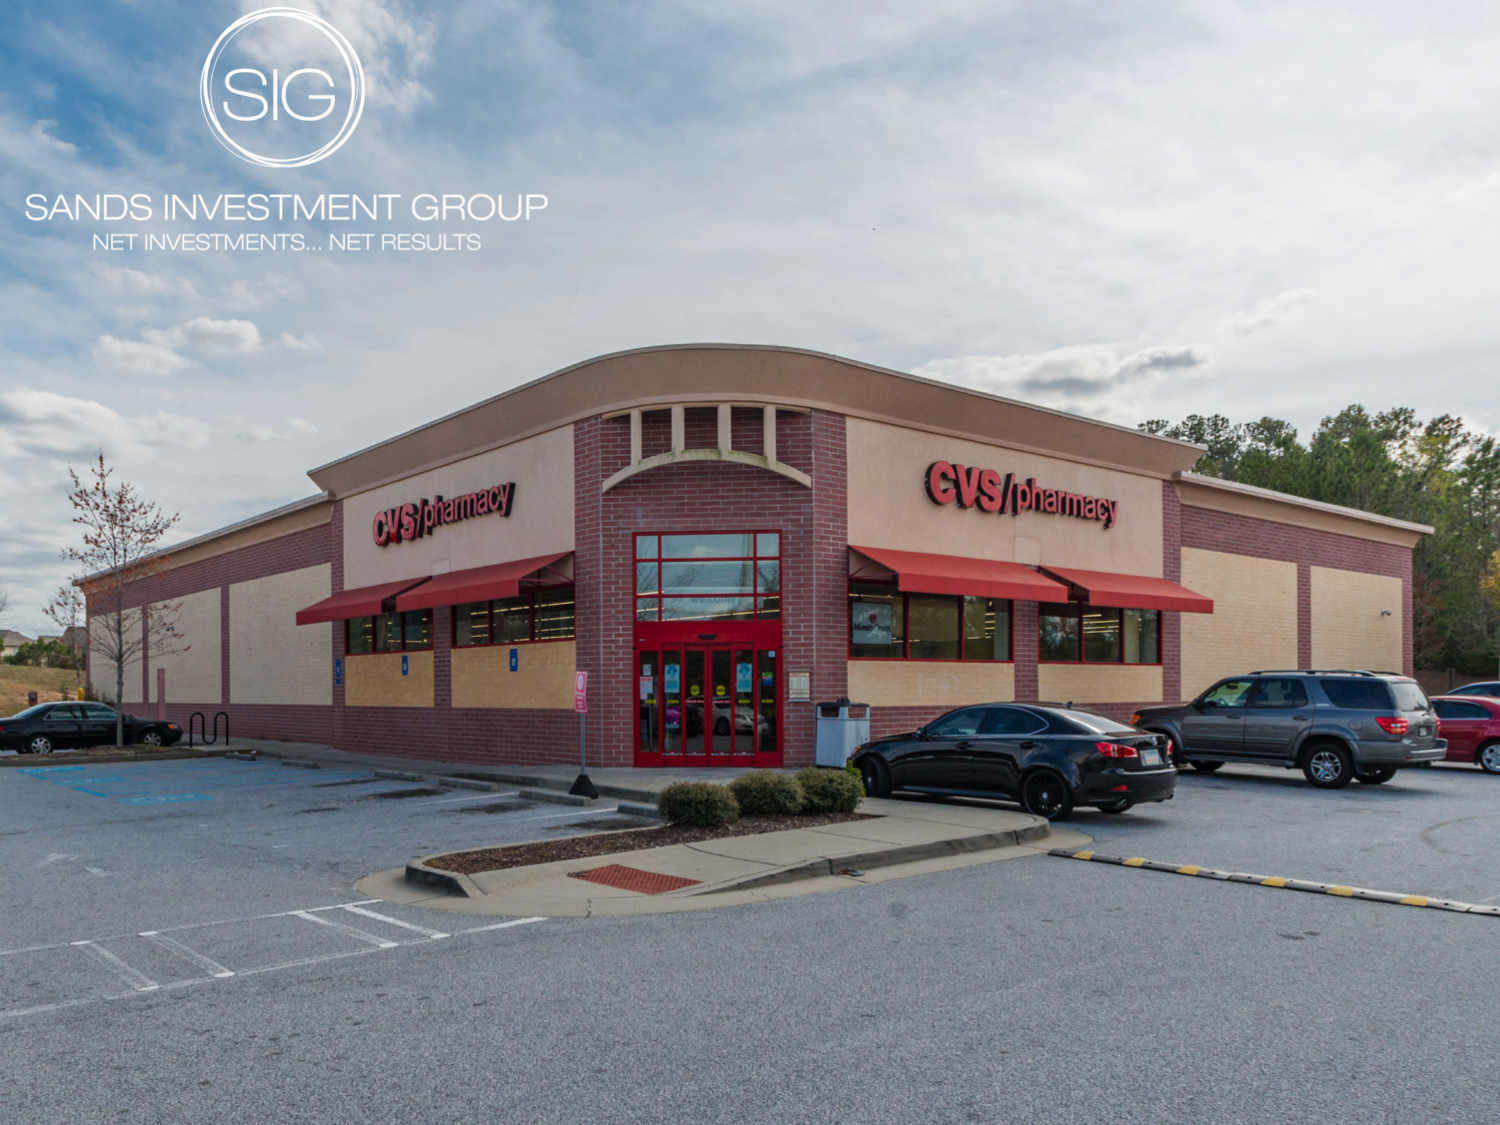 CVS - Lawrenceville with logo